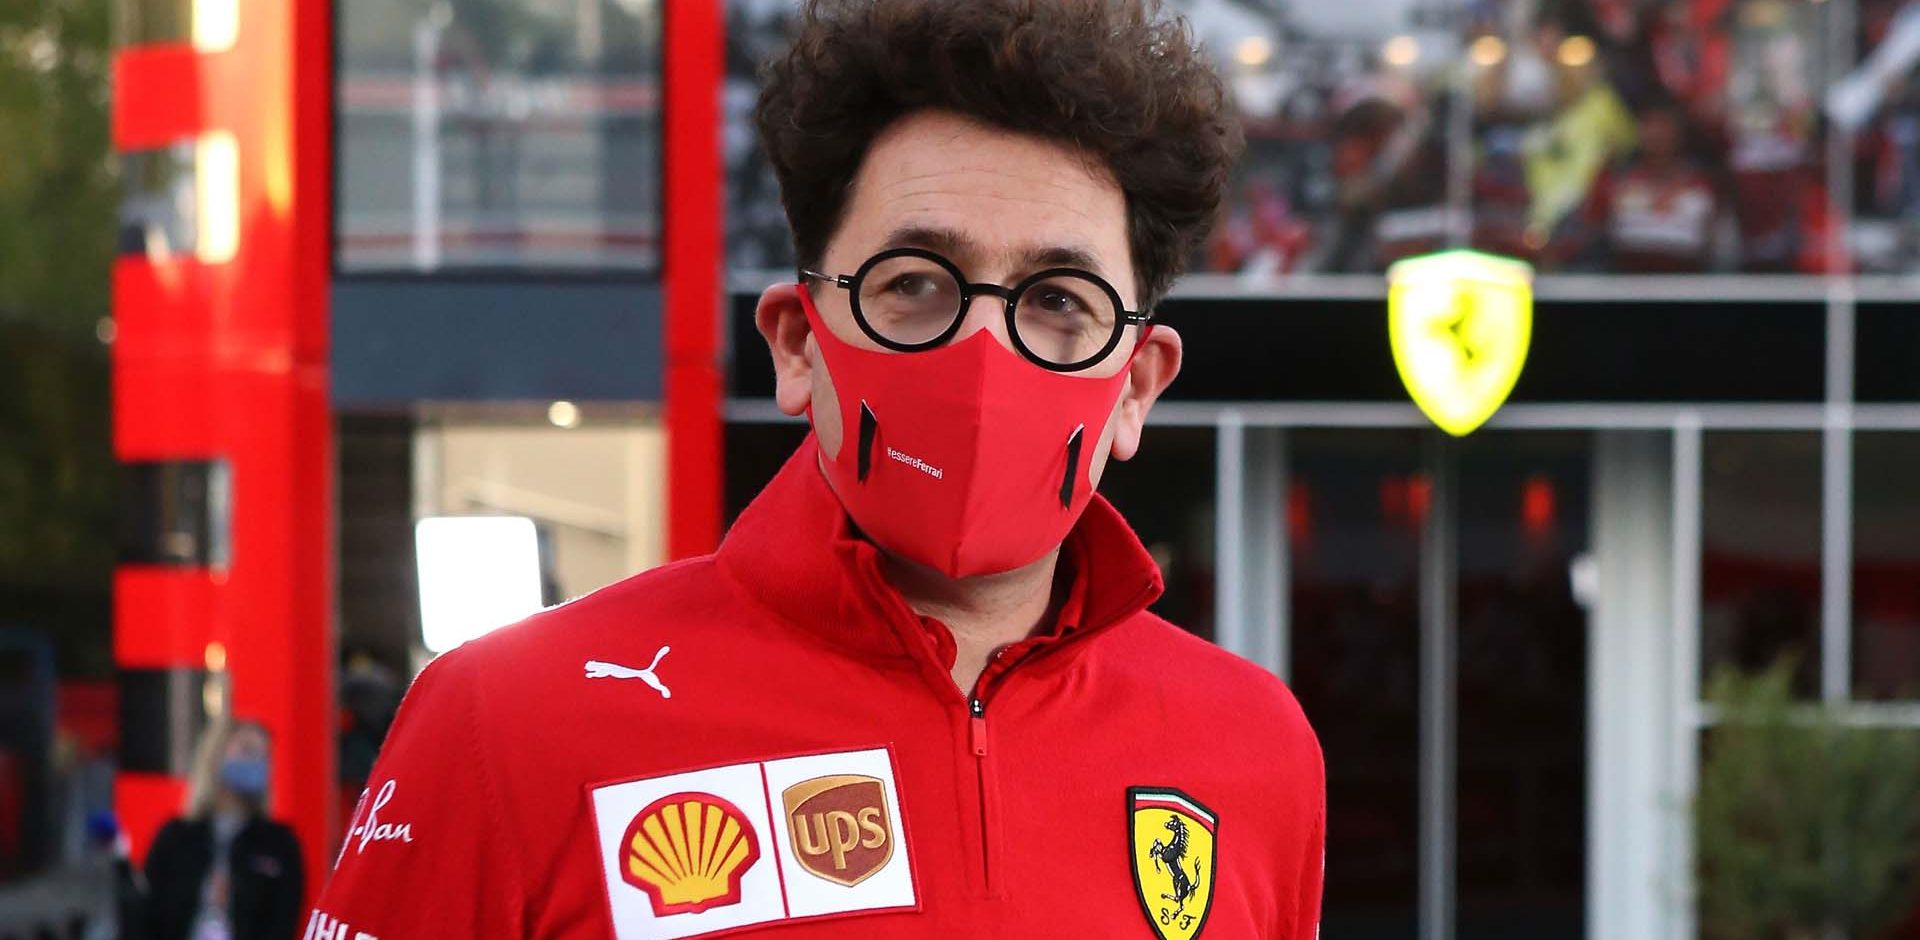 GP EMILIA ROMAGNA F1/2020 -  VENERDÌ 30/10/2020   credit: @Scuderia Ferrari Press Office Mattia Binotto